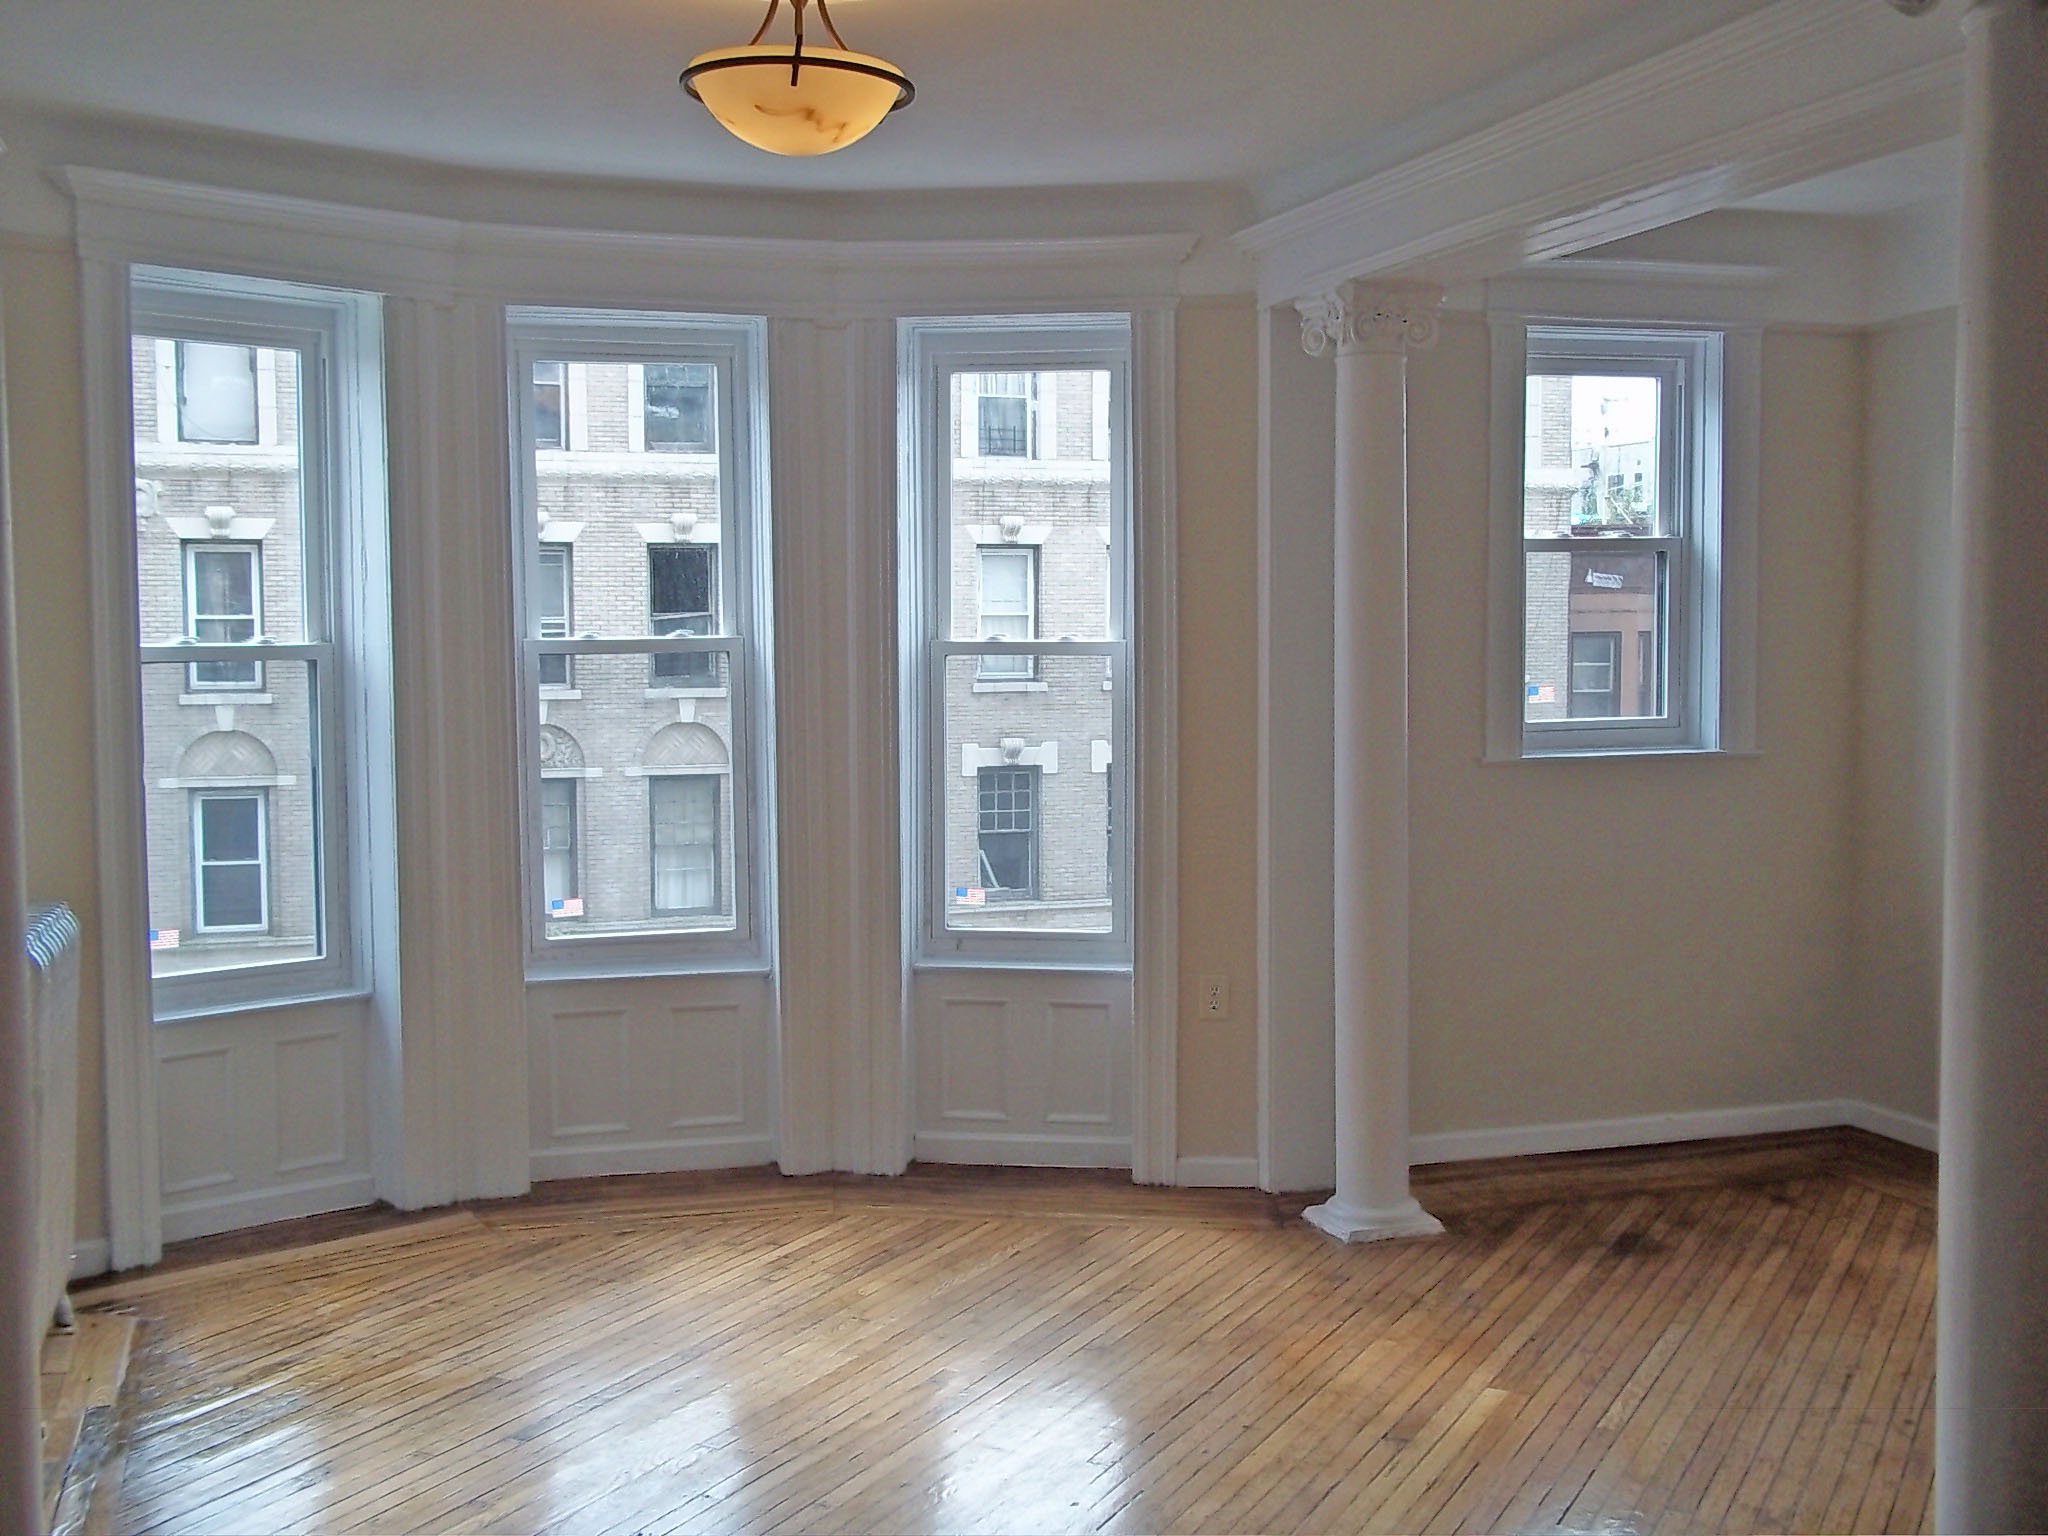 Crown heights 3 bedroom apartment for rent brooklyn crg3102 for 3 bedroom houses and apartments for rent